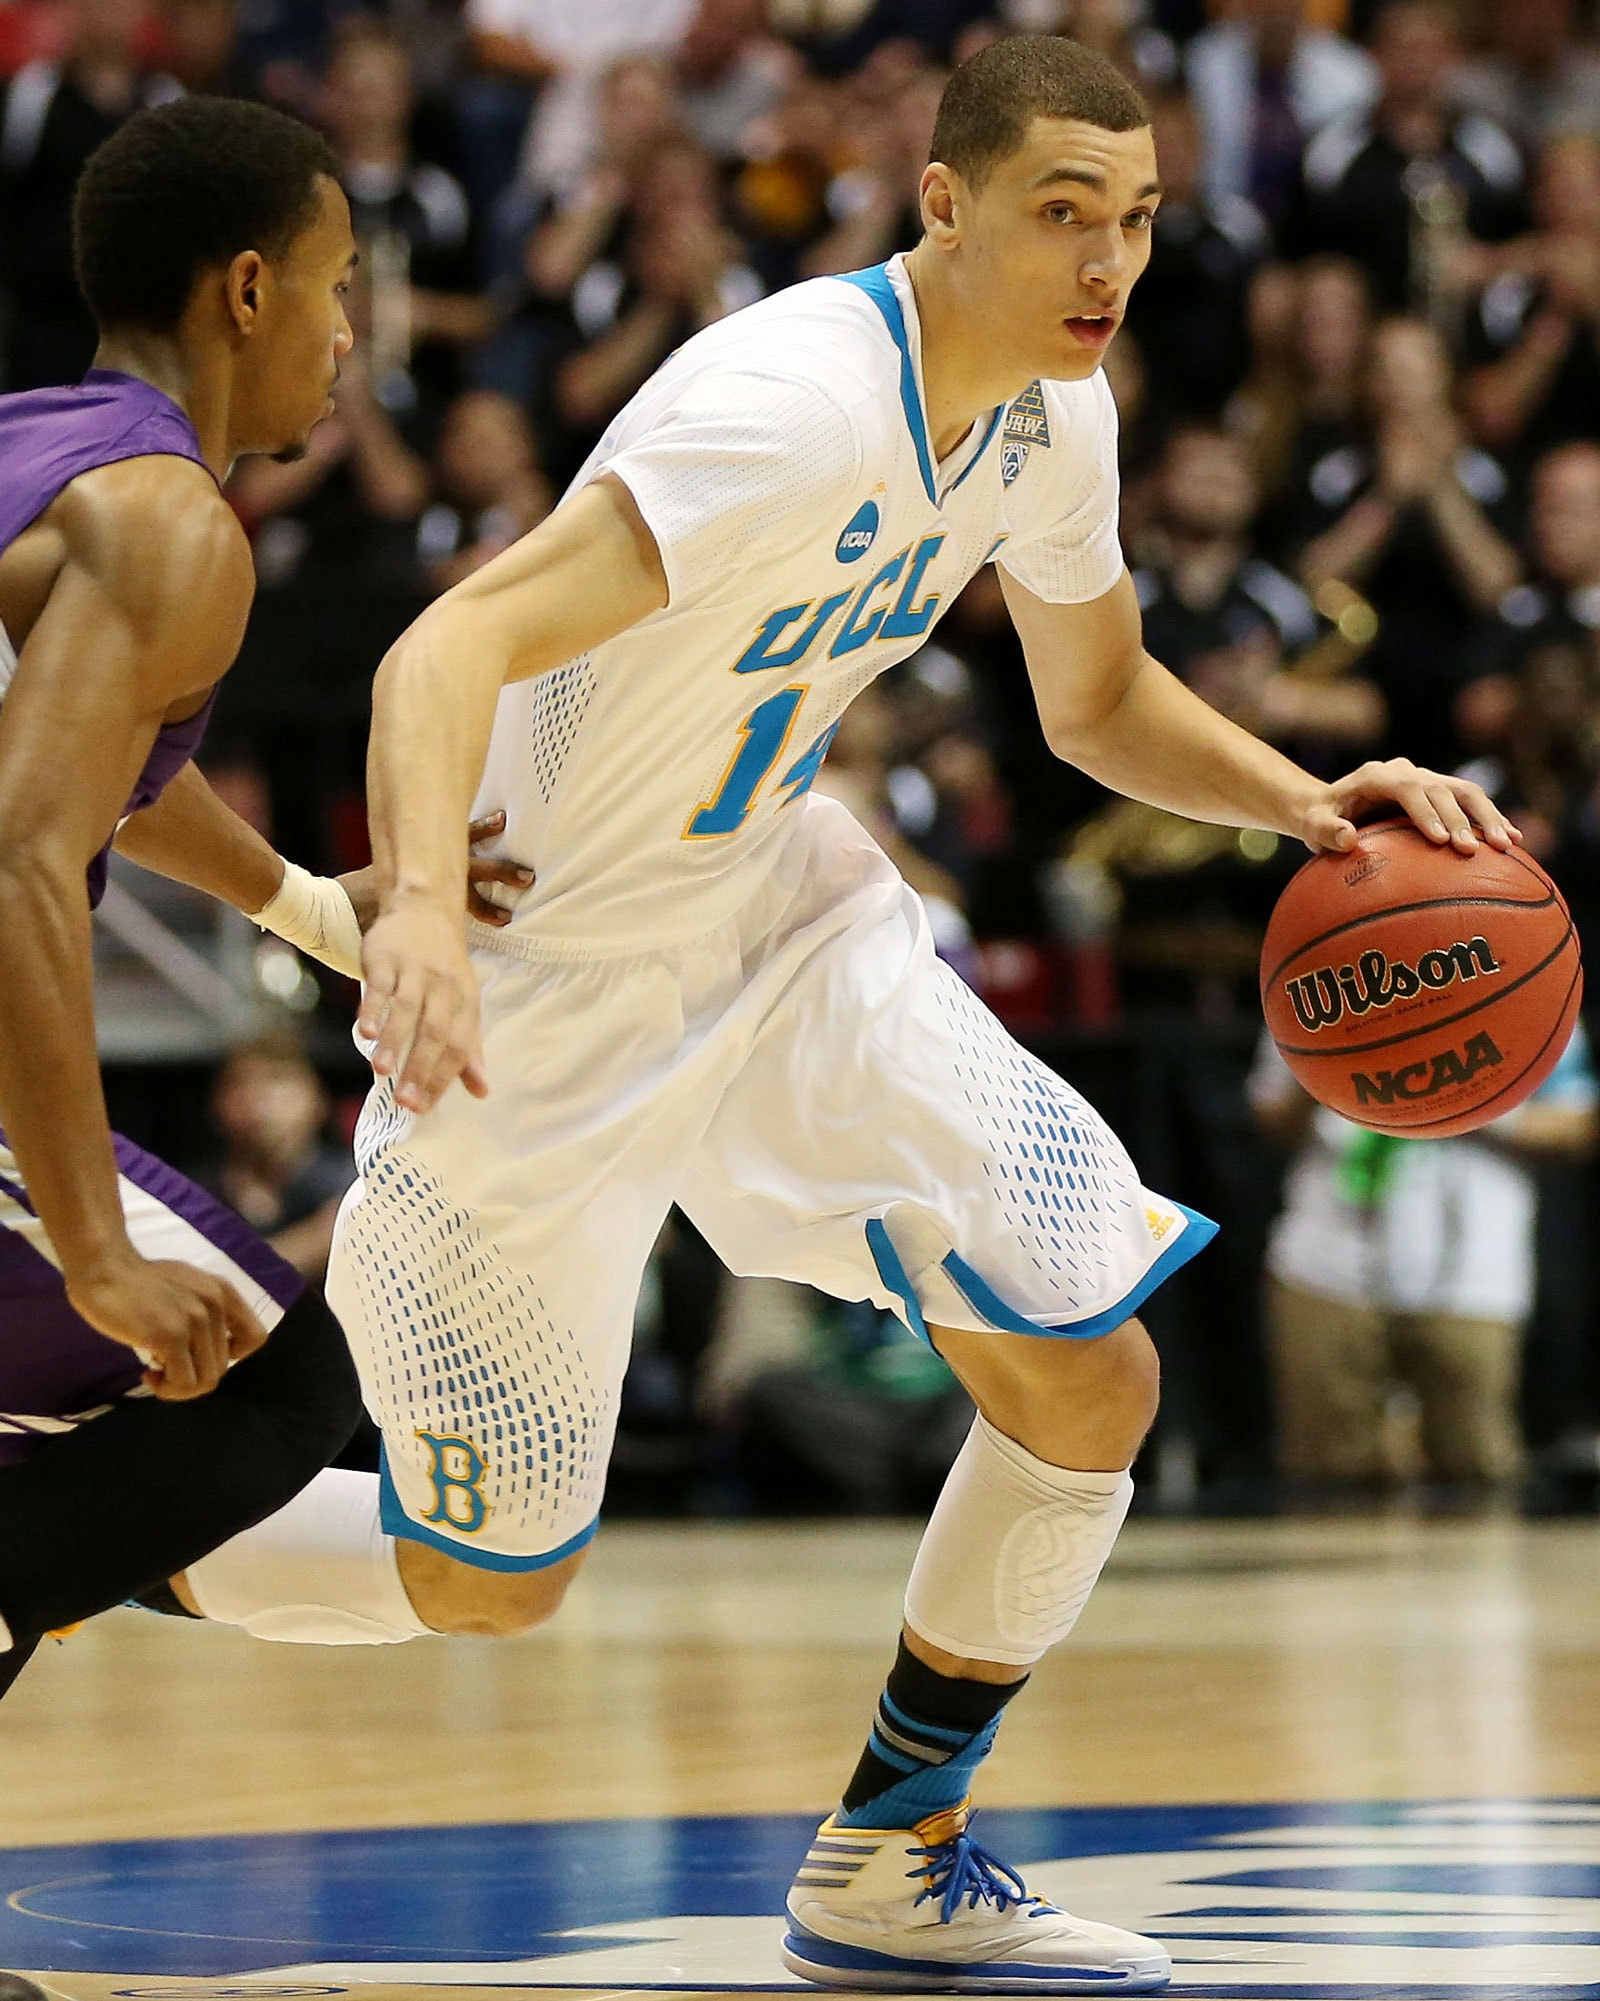 Zach LaVine playing for UCLA